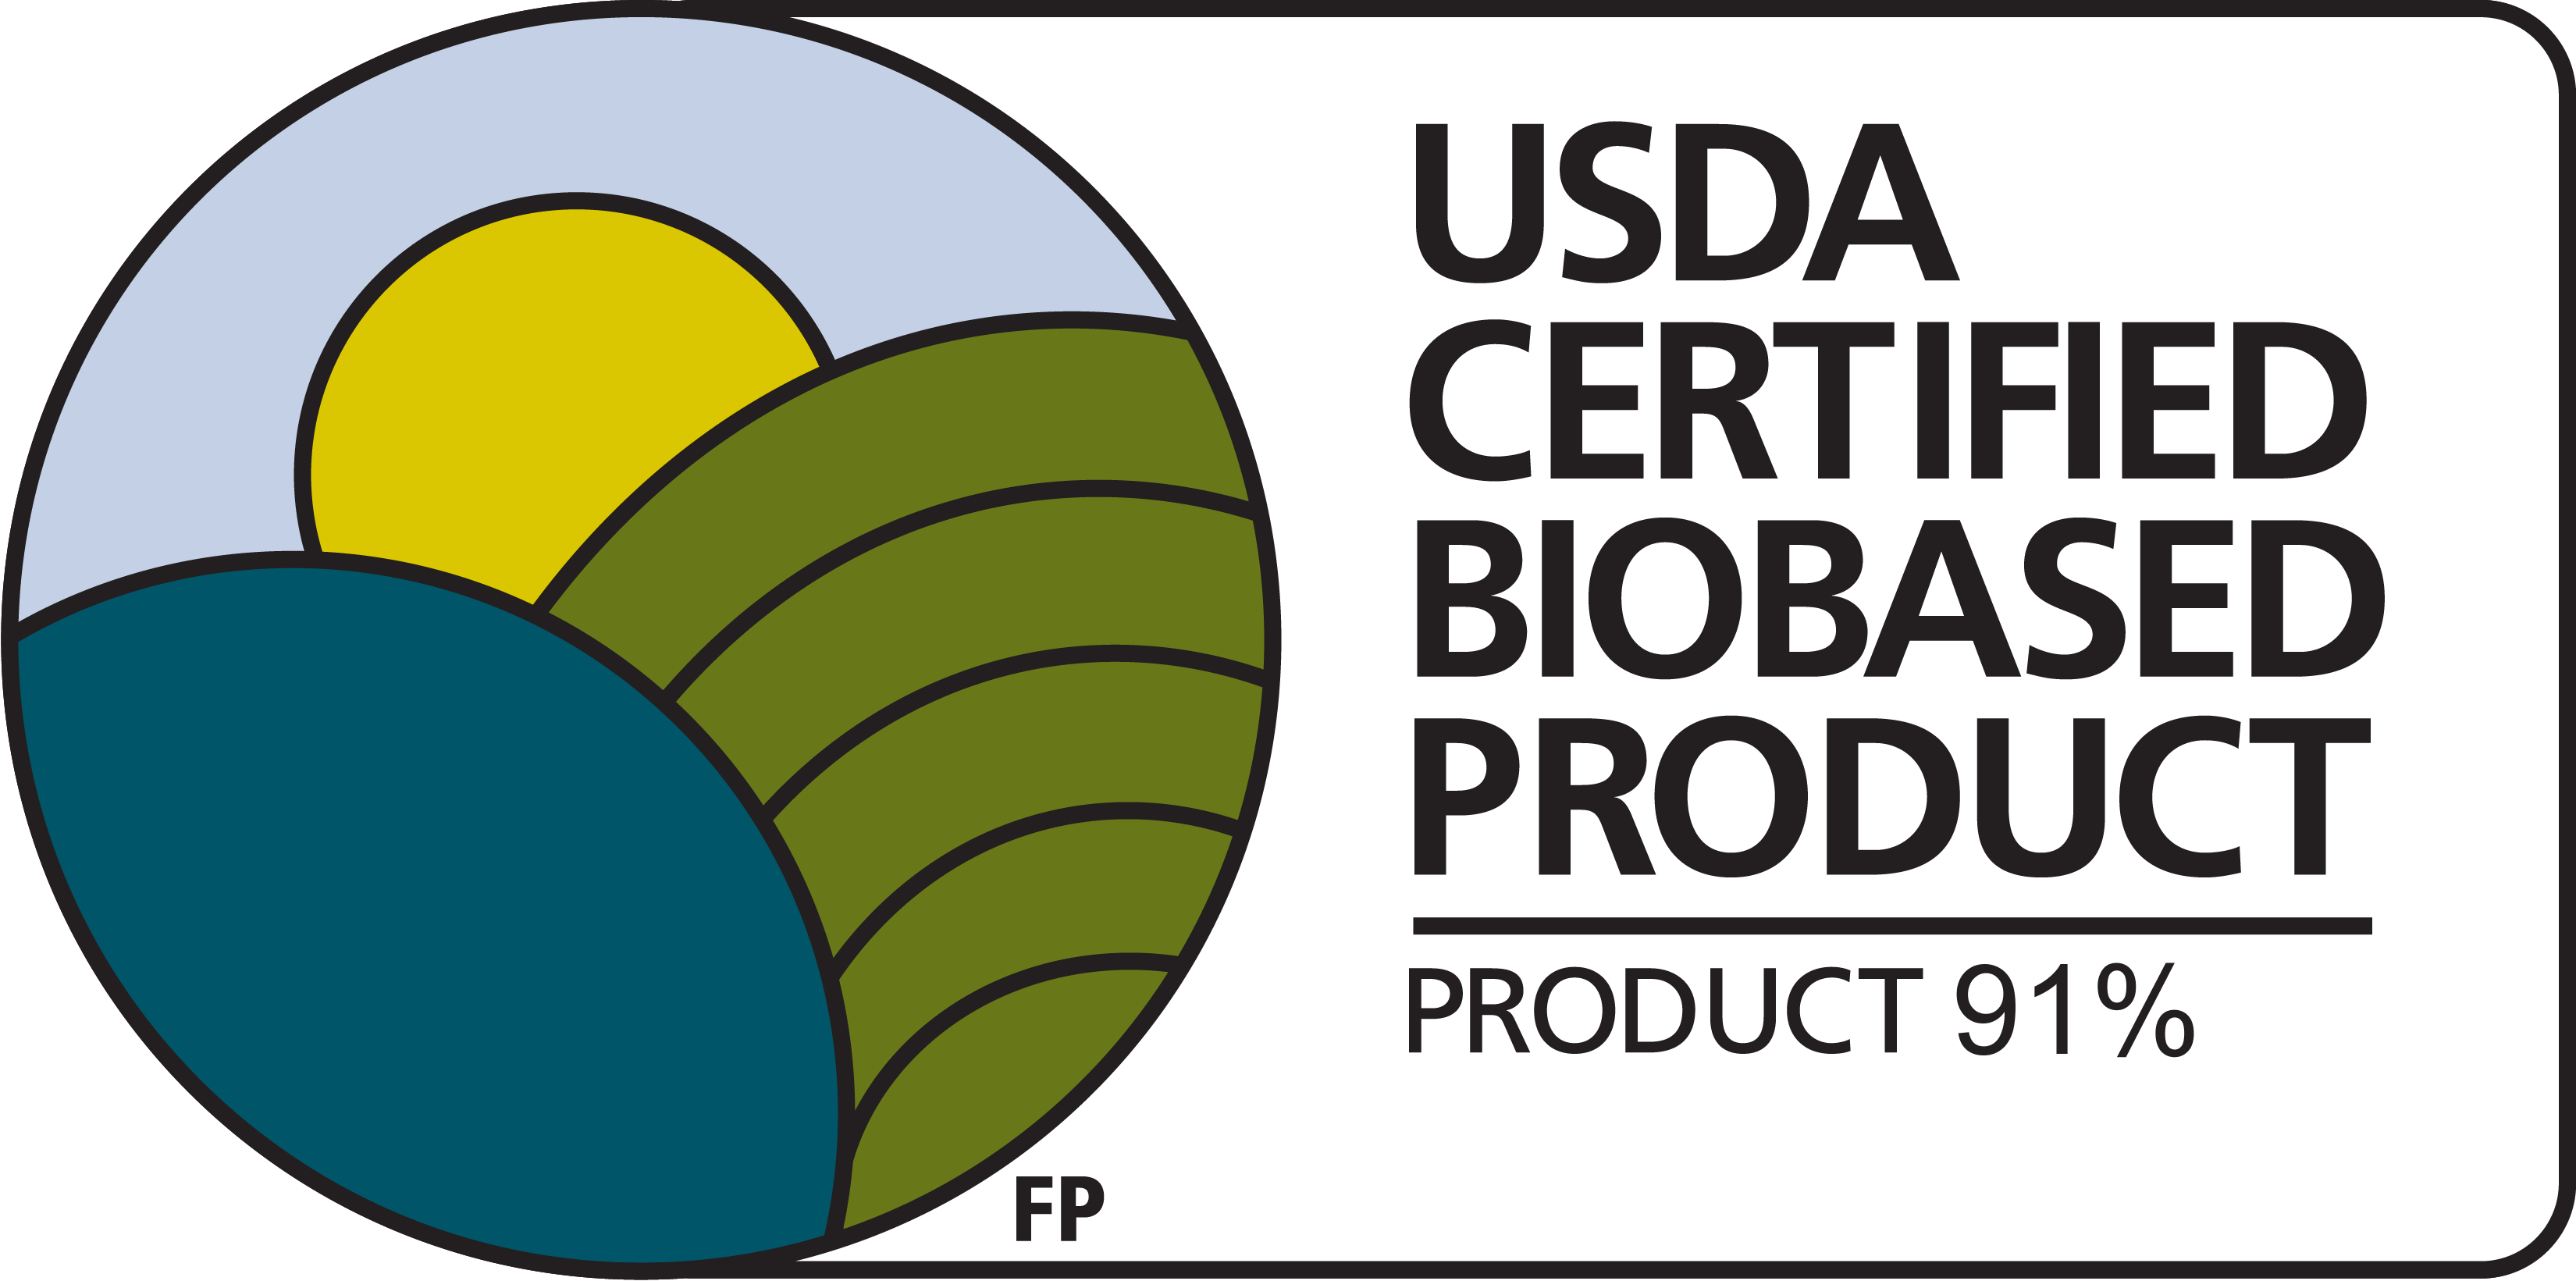 USDA Certified Biobased Product Label for Honest Bubble Bath